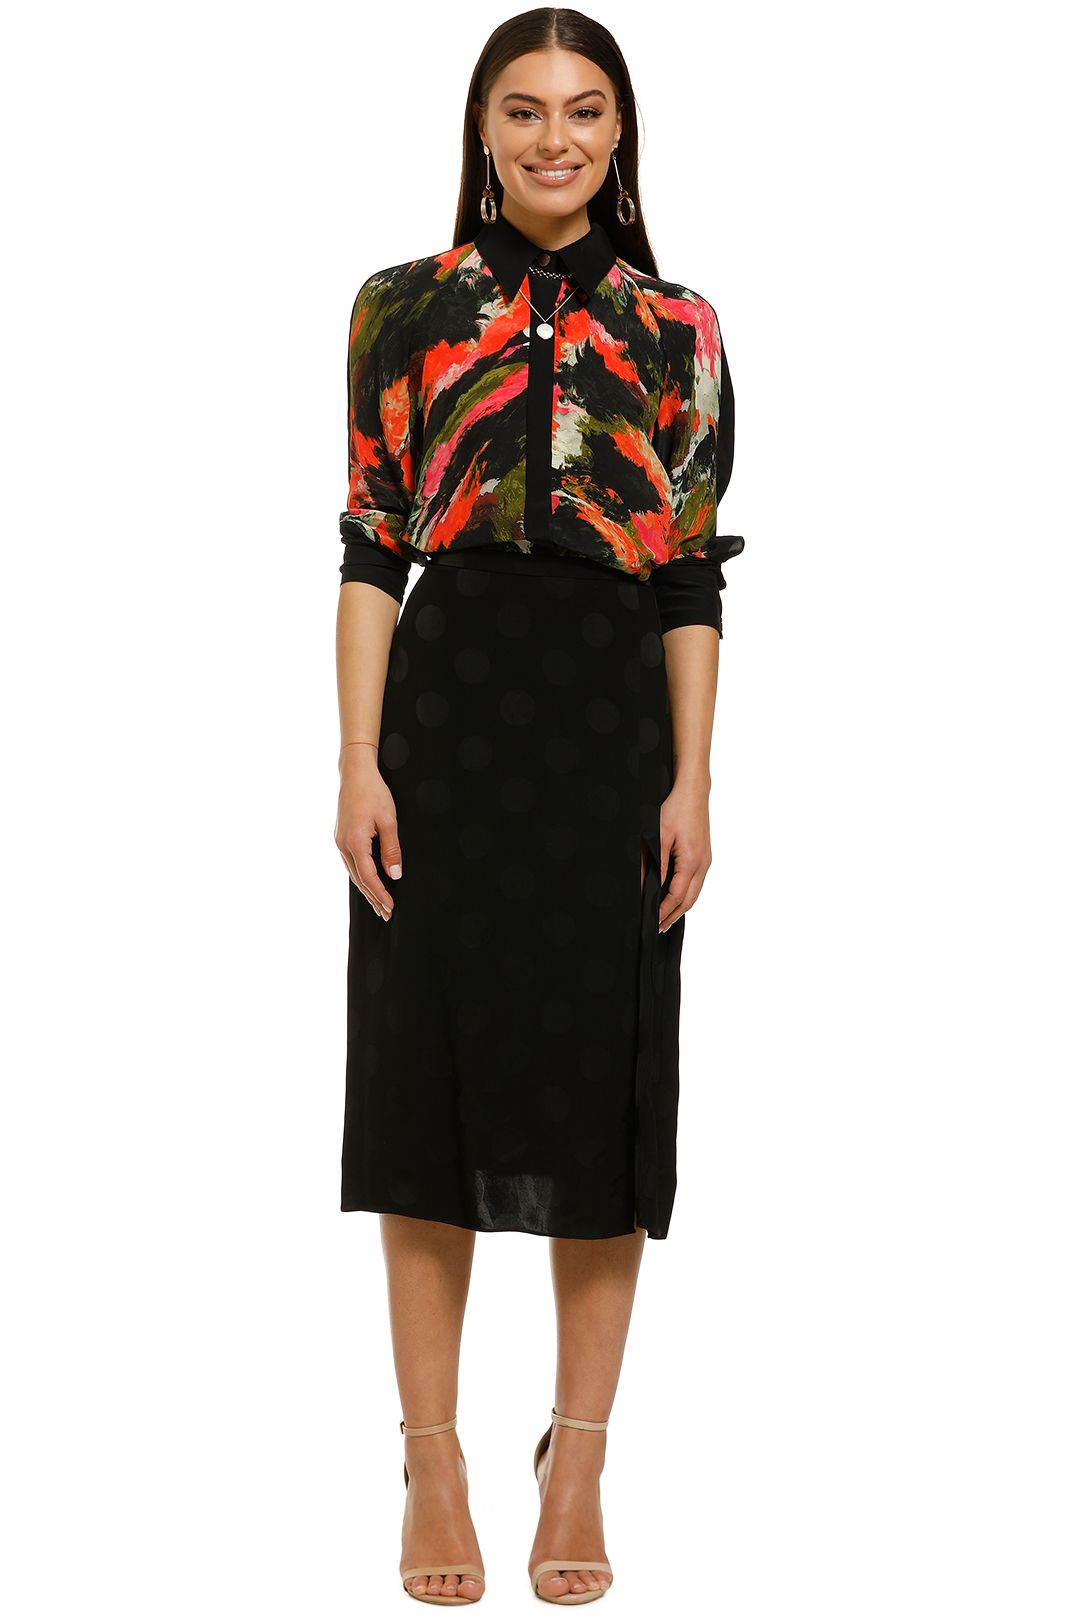 Cooper-St-Bright-Eyed-Skirt-Black-Polka-Dot-Front